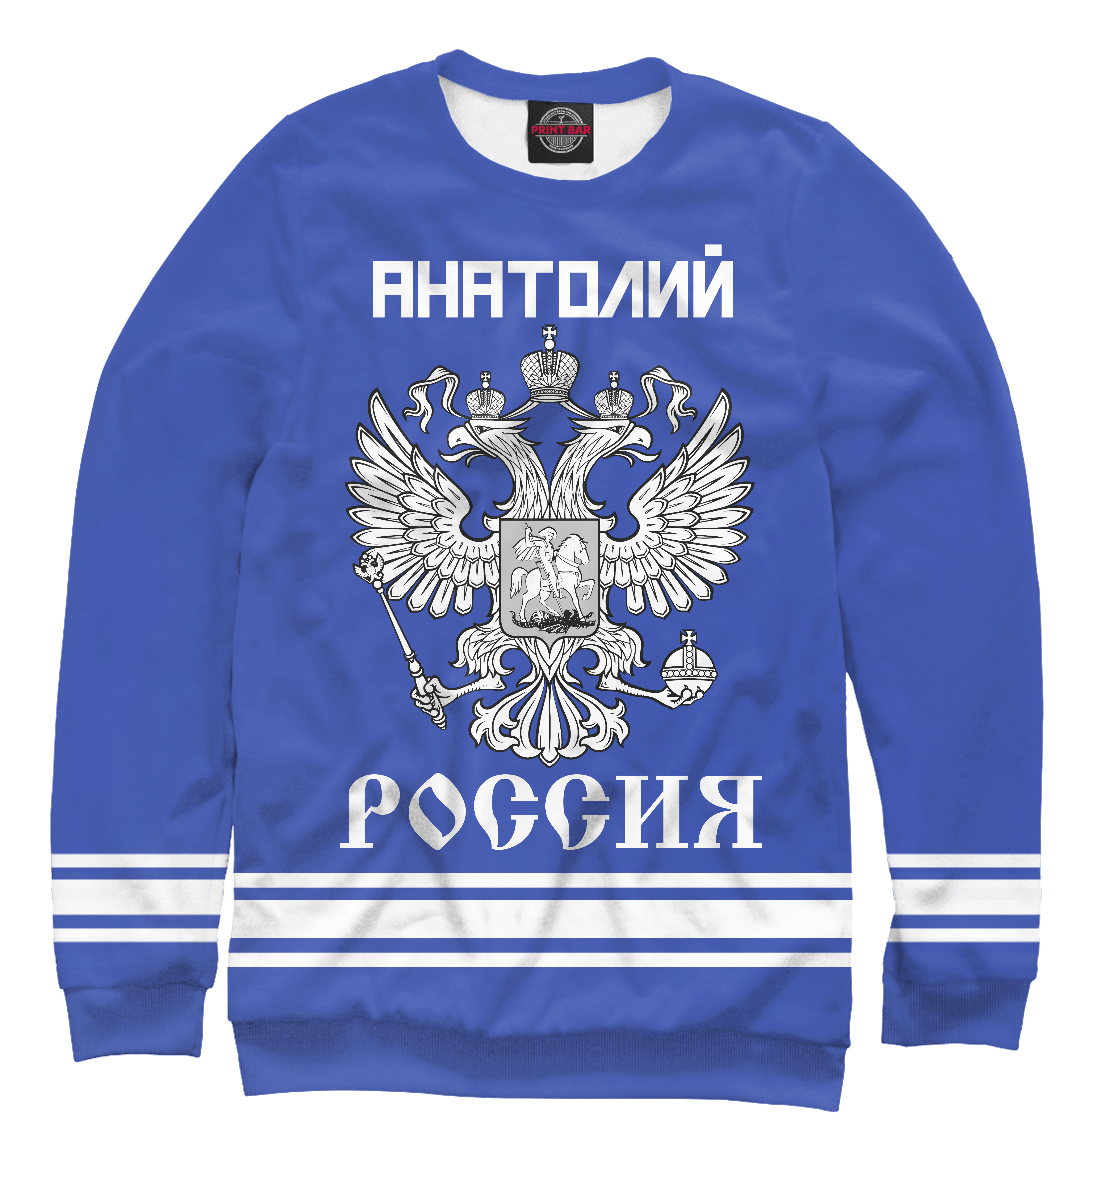 Купить АНАТОЛИЙ sport russia collection, Printbar, Свитшоты, ANL-903809-swi-2